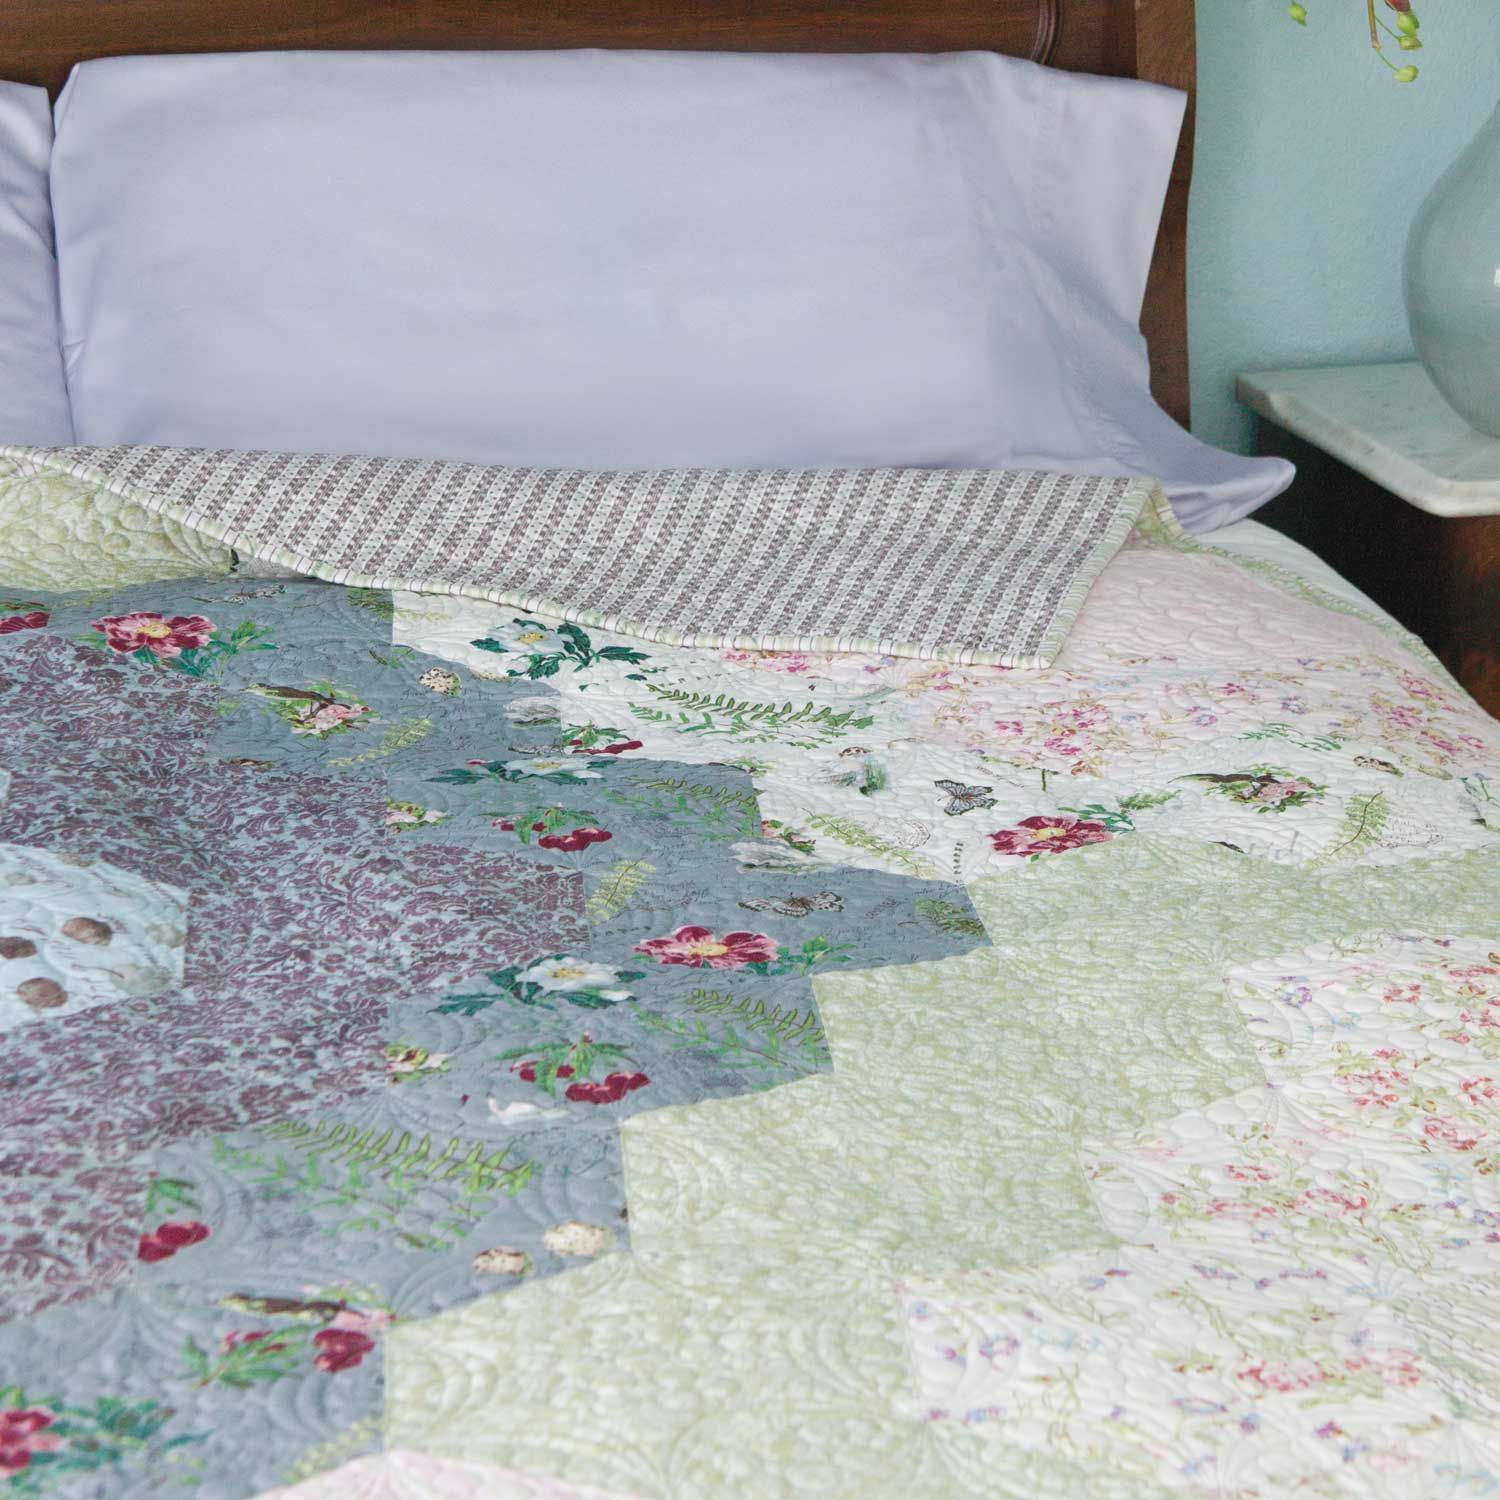 NATURE'S HARMONY Big hexies lap quilt pattern Designed by JOANIE ... : harmony quilt pattern - Adamdwight.com